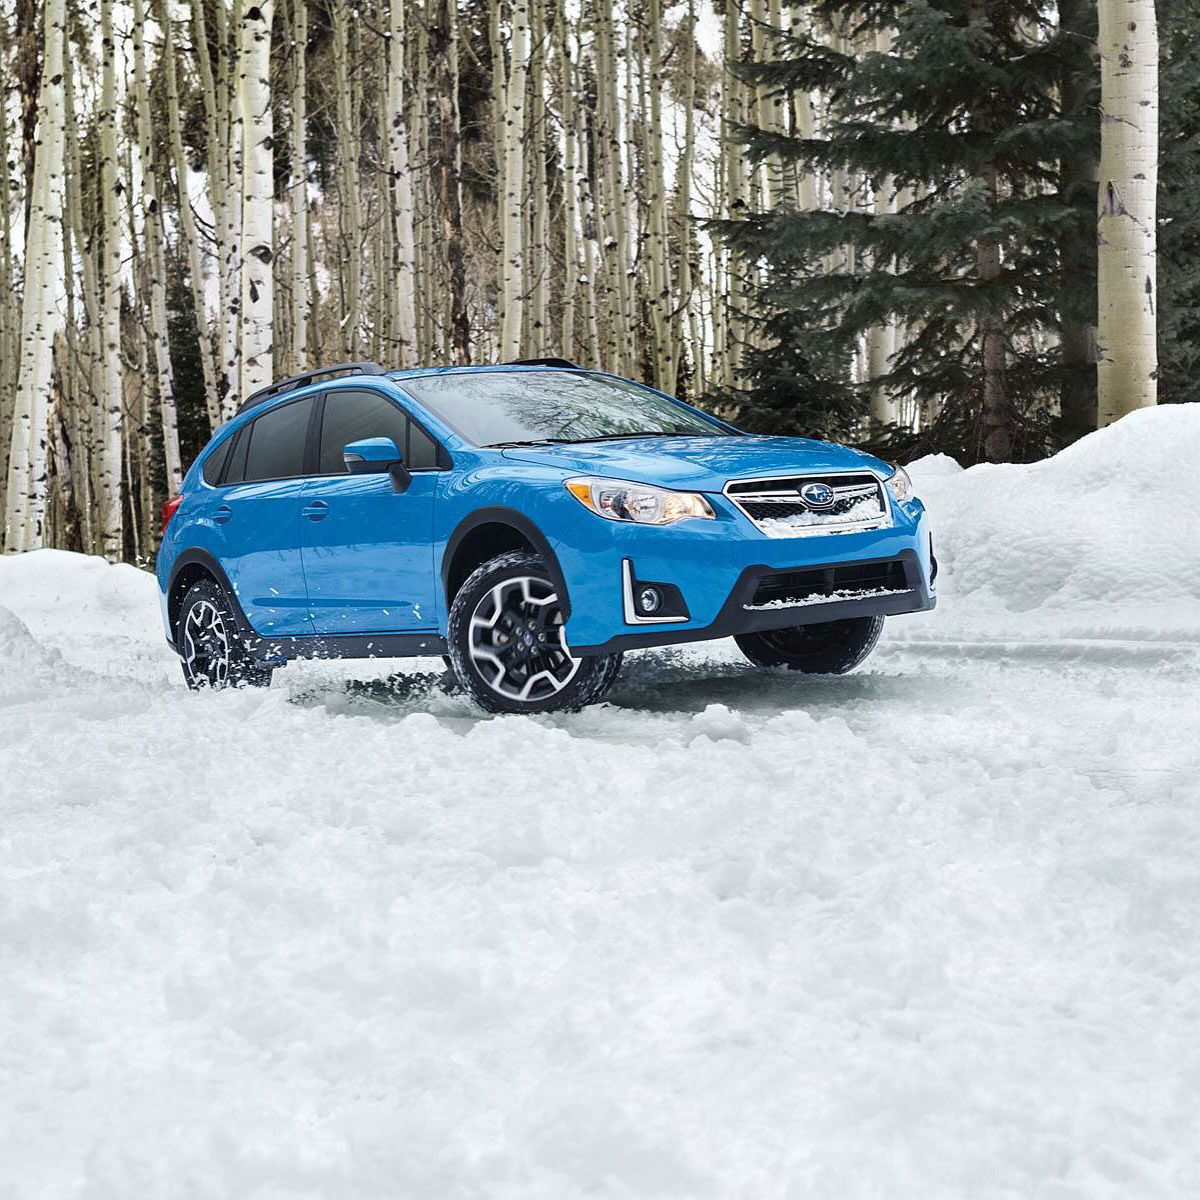 2017 subaru hyper blue crosstrek subaru crosstrek pinterest subaru and cars